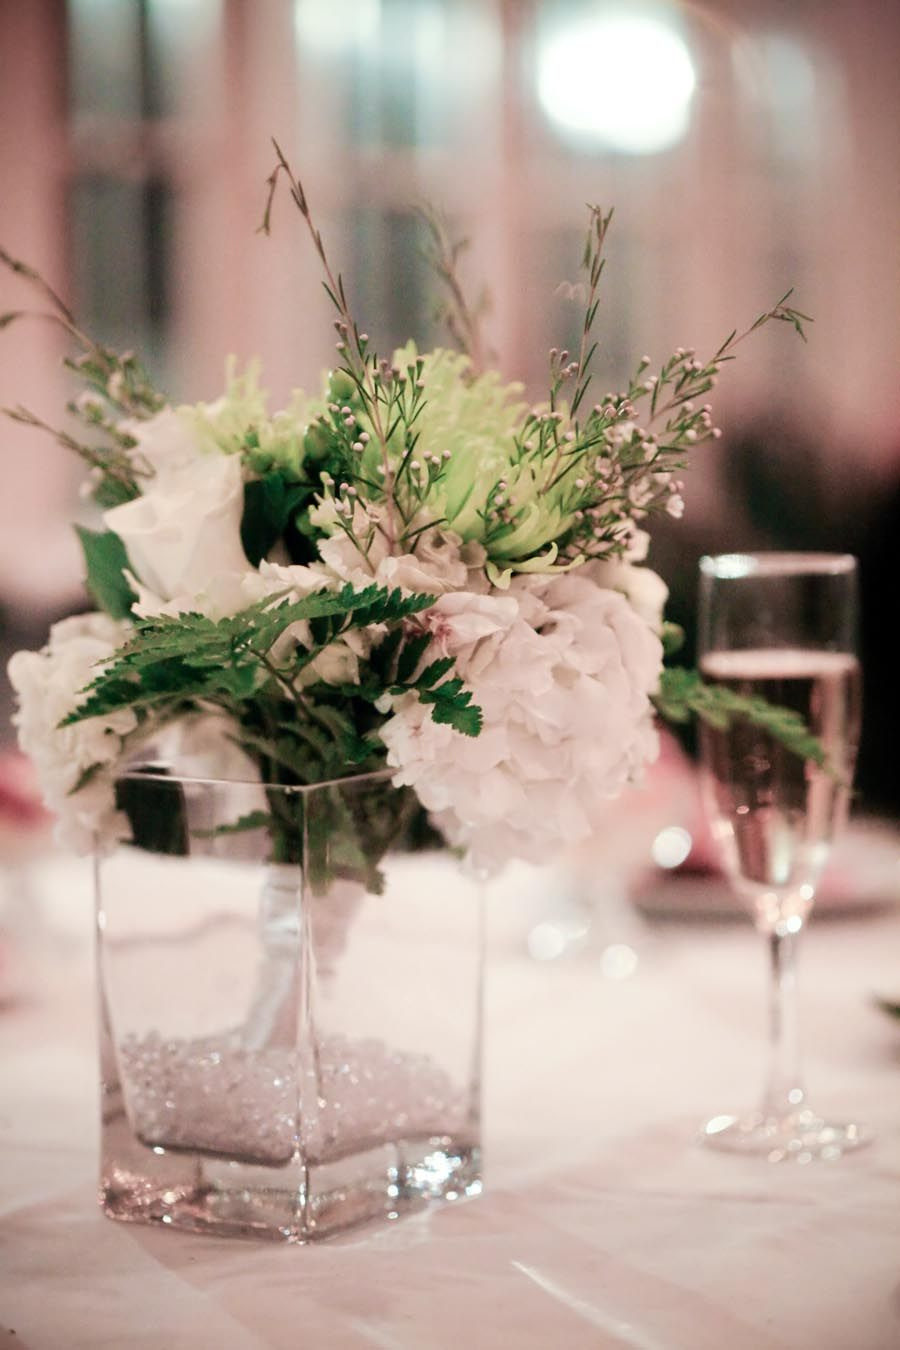 large glass vase ideas of simple flower arrangements for tables luxury vases vase centerpieces inside related post